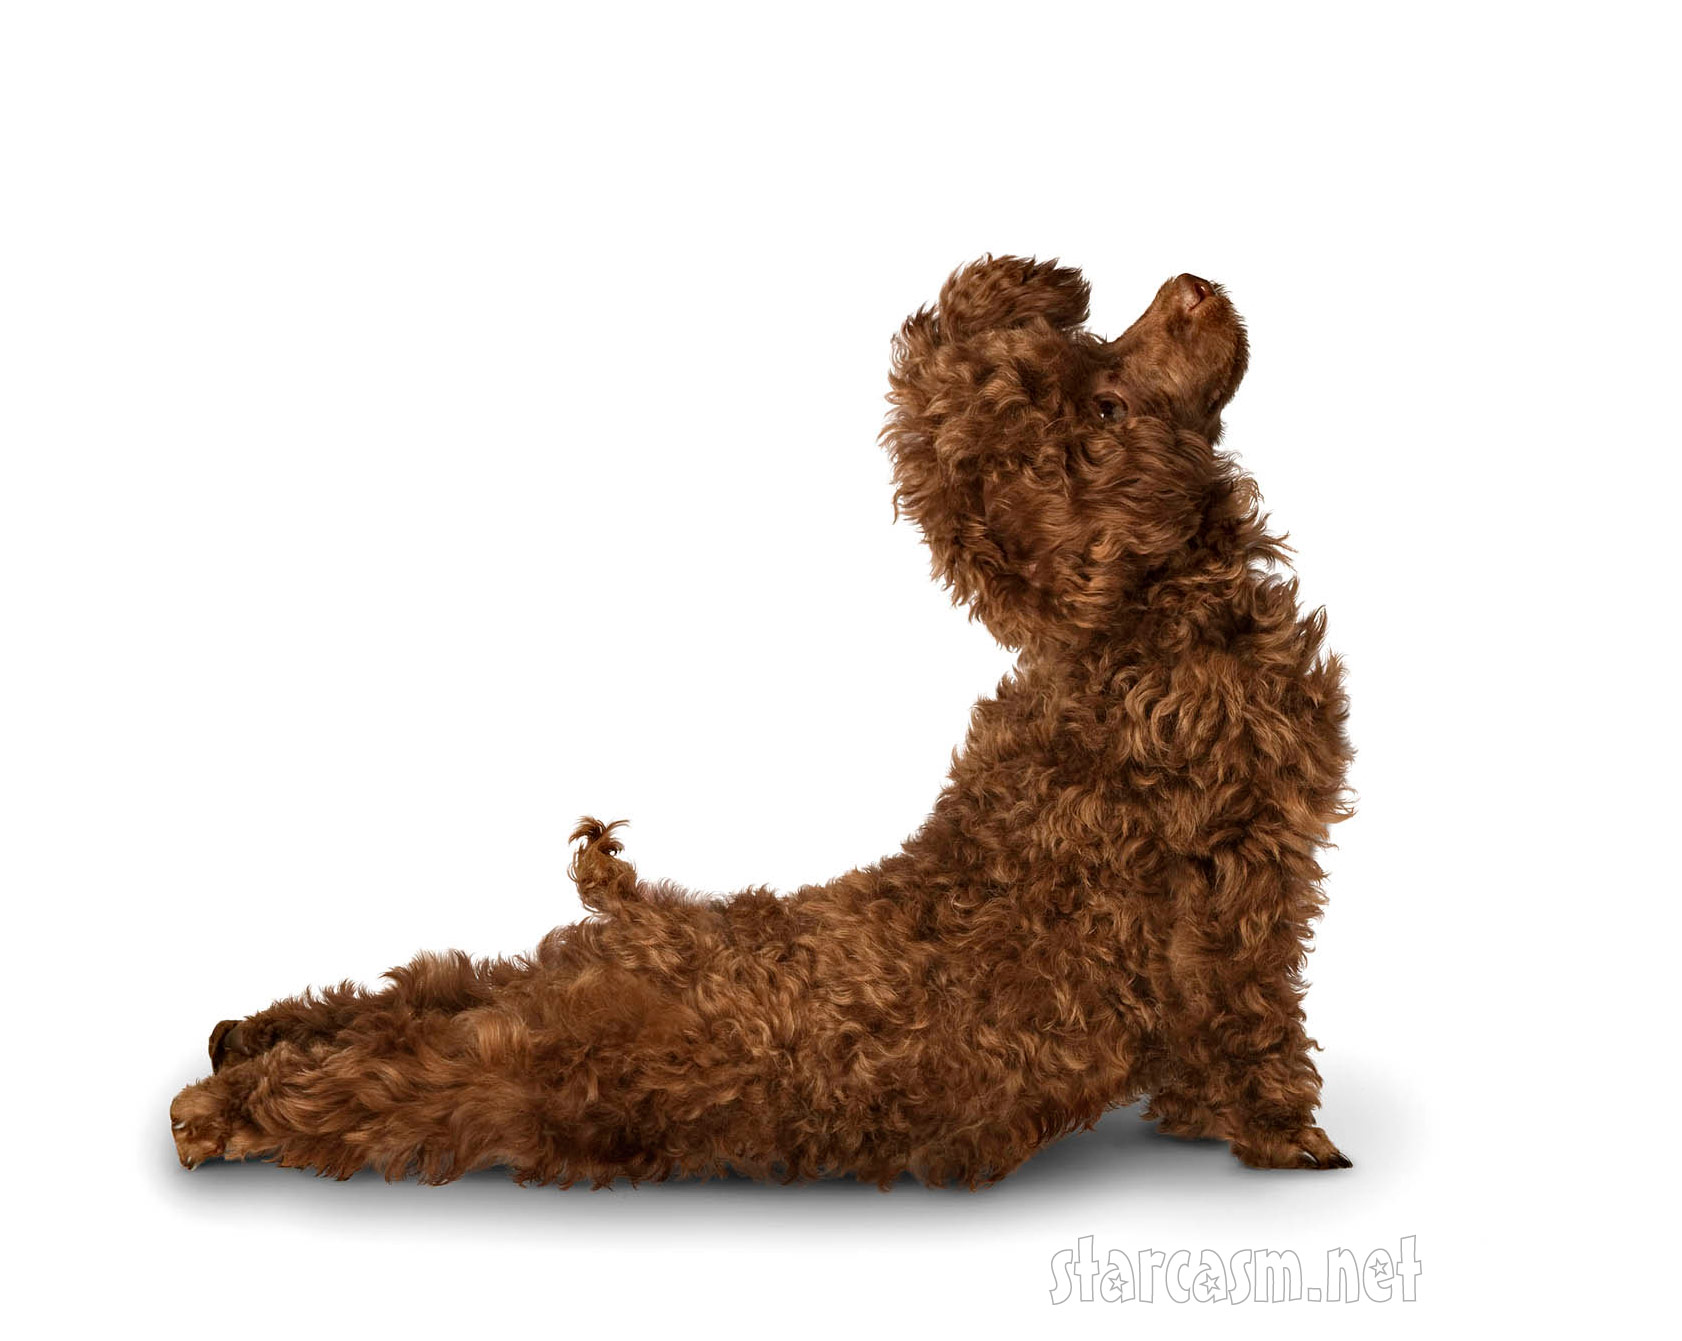 The yoga dogs wall calendar features a variety of pooches in various